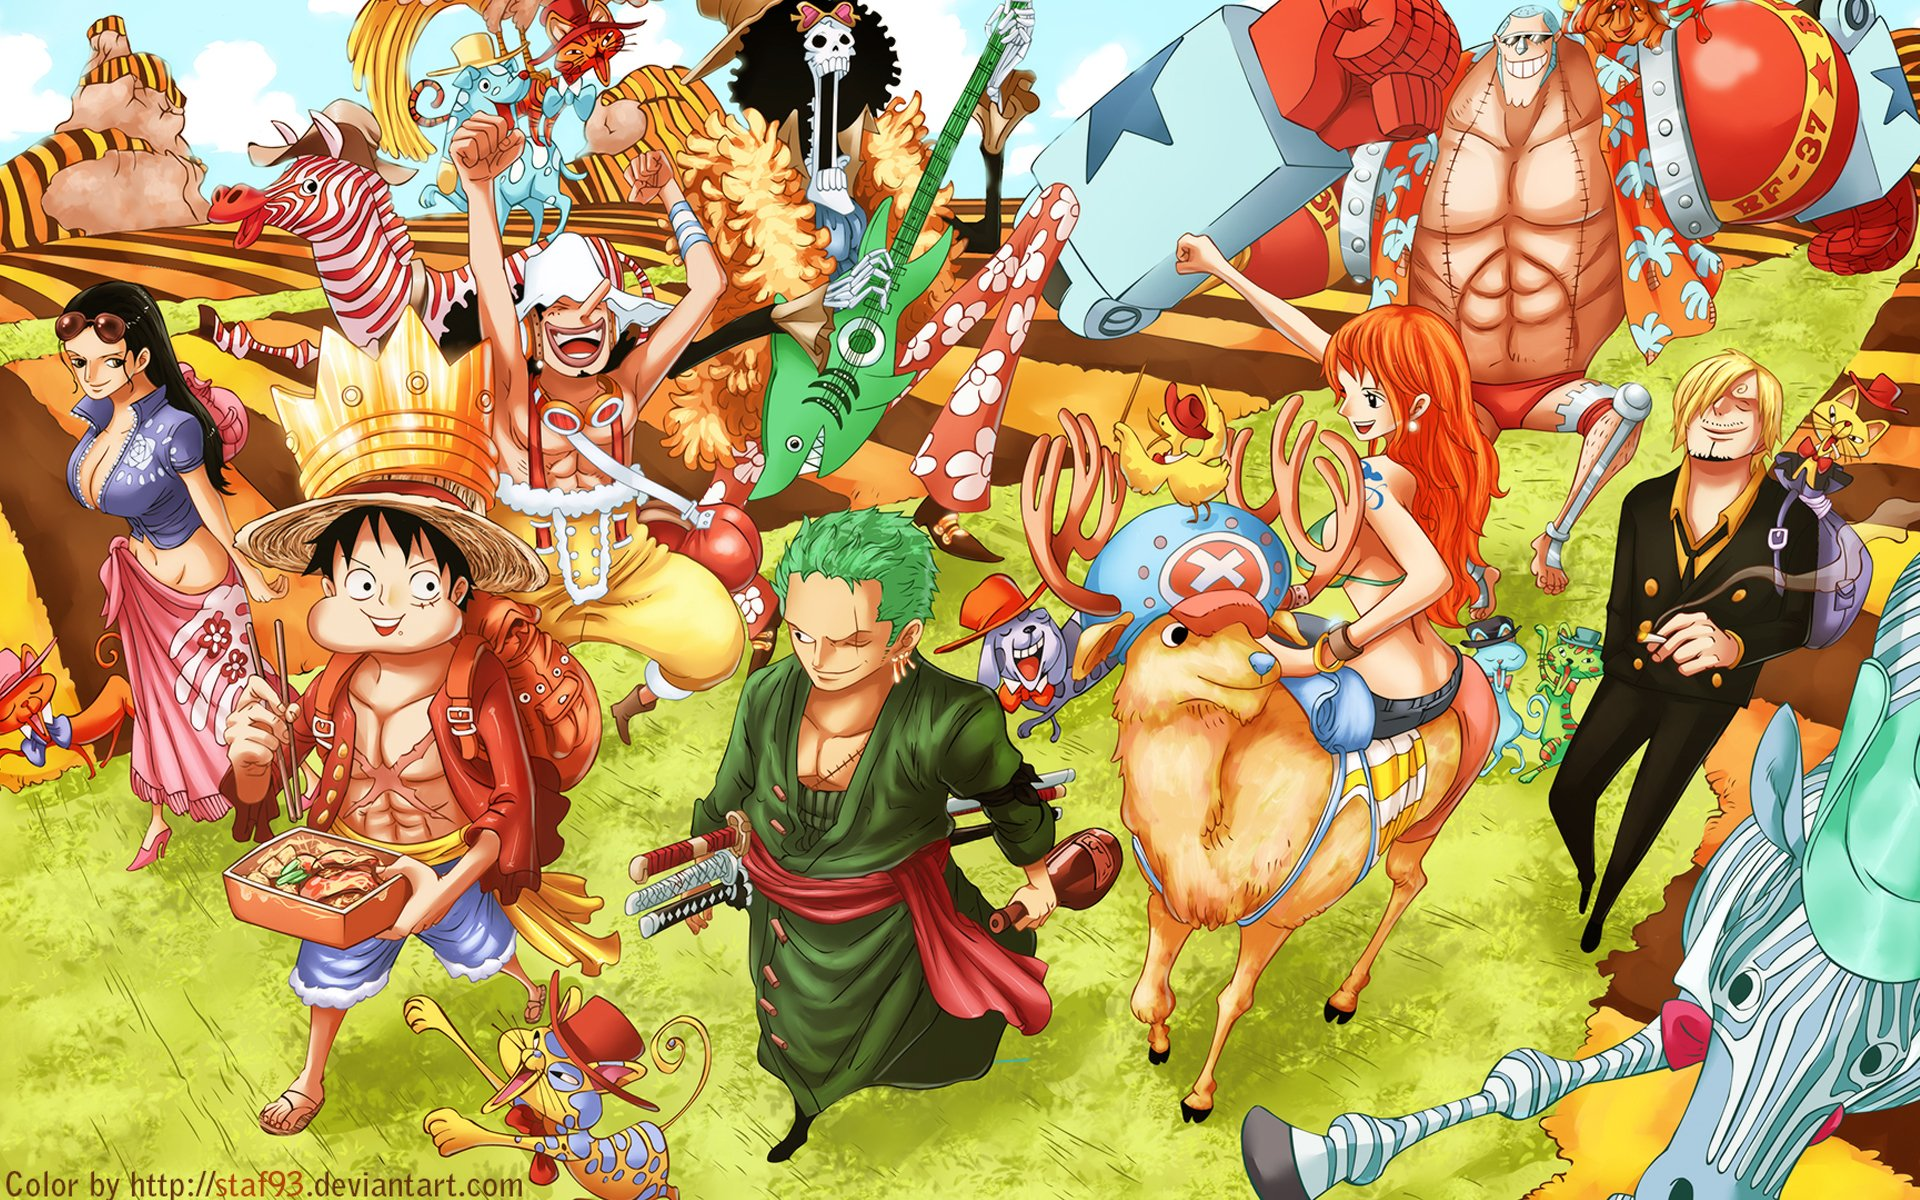 Anime - One Piece  Sanji (One Piece) Franky (One Piece) Nami (One Piece) Tony Tony Chopper Zoro Roronoa Monkey D. Luffy Nico Robin Brook (One Piece) Usopp (One Piece) Wallpaper